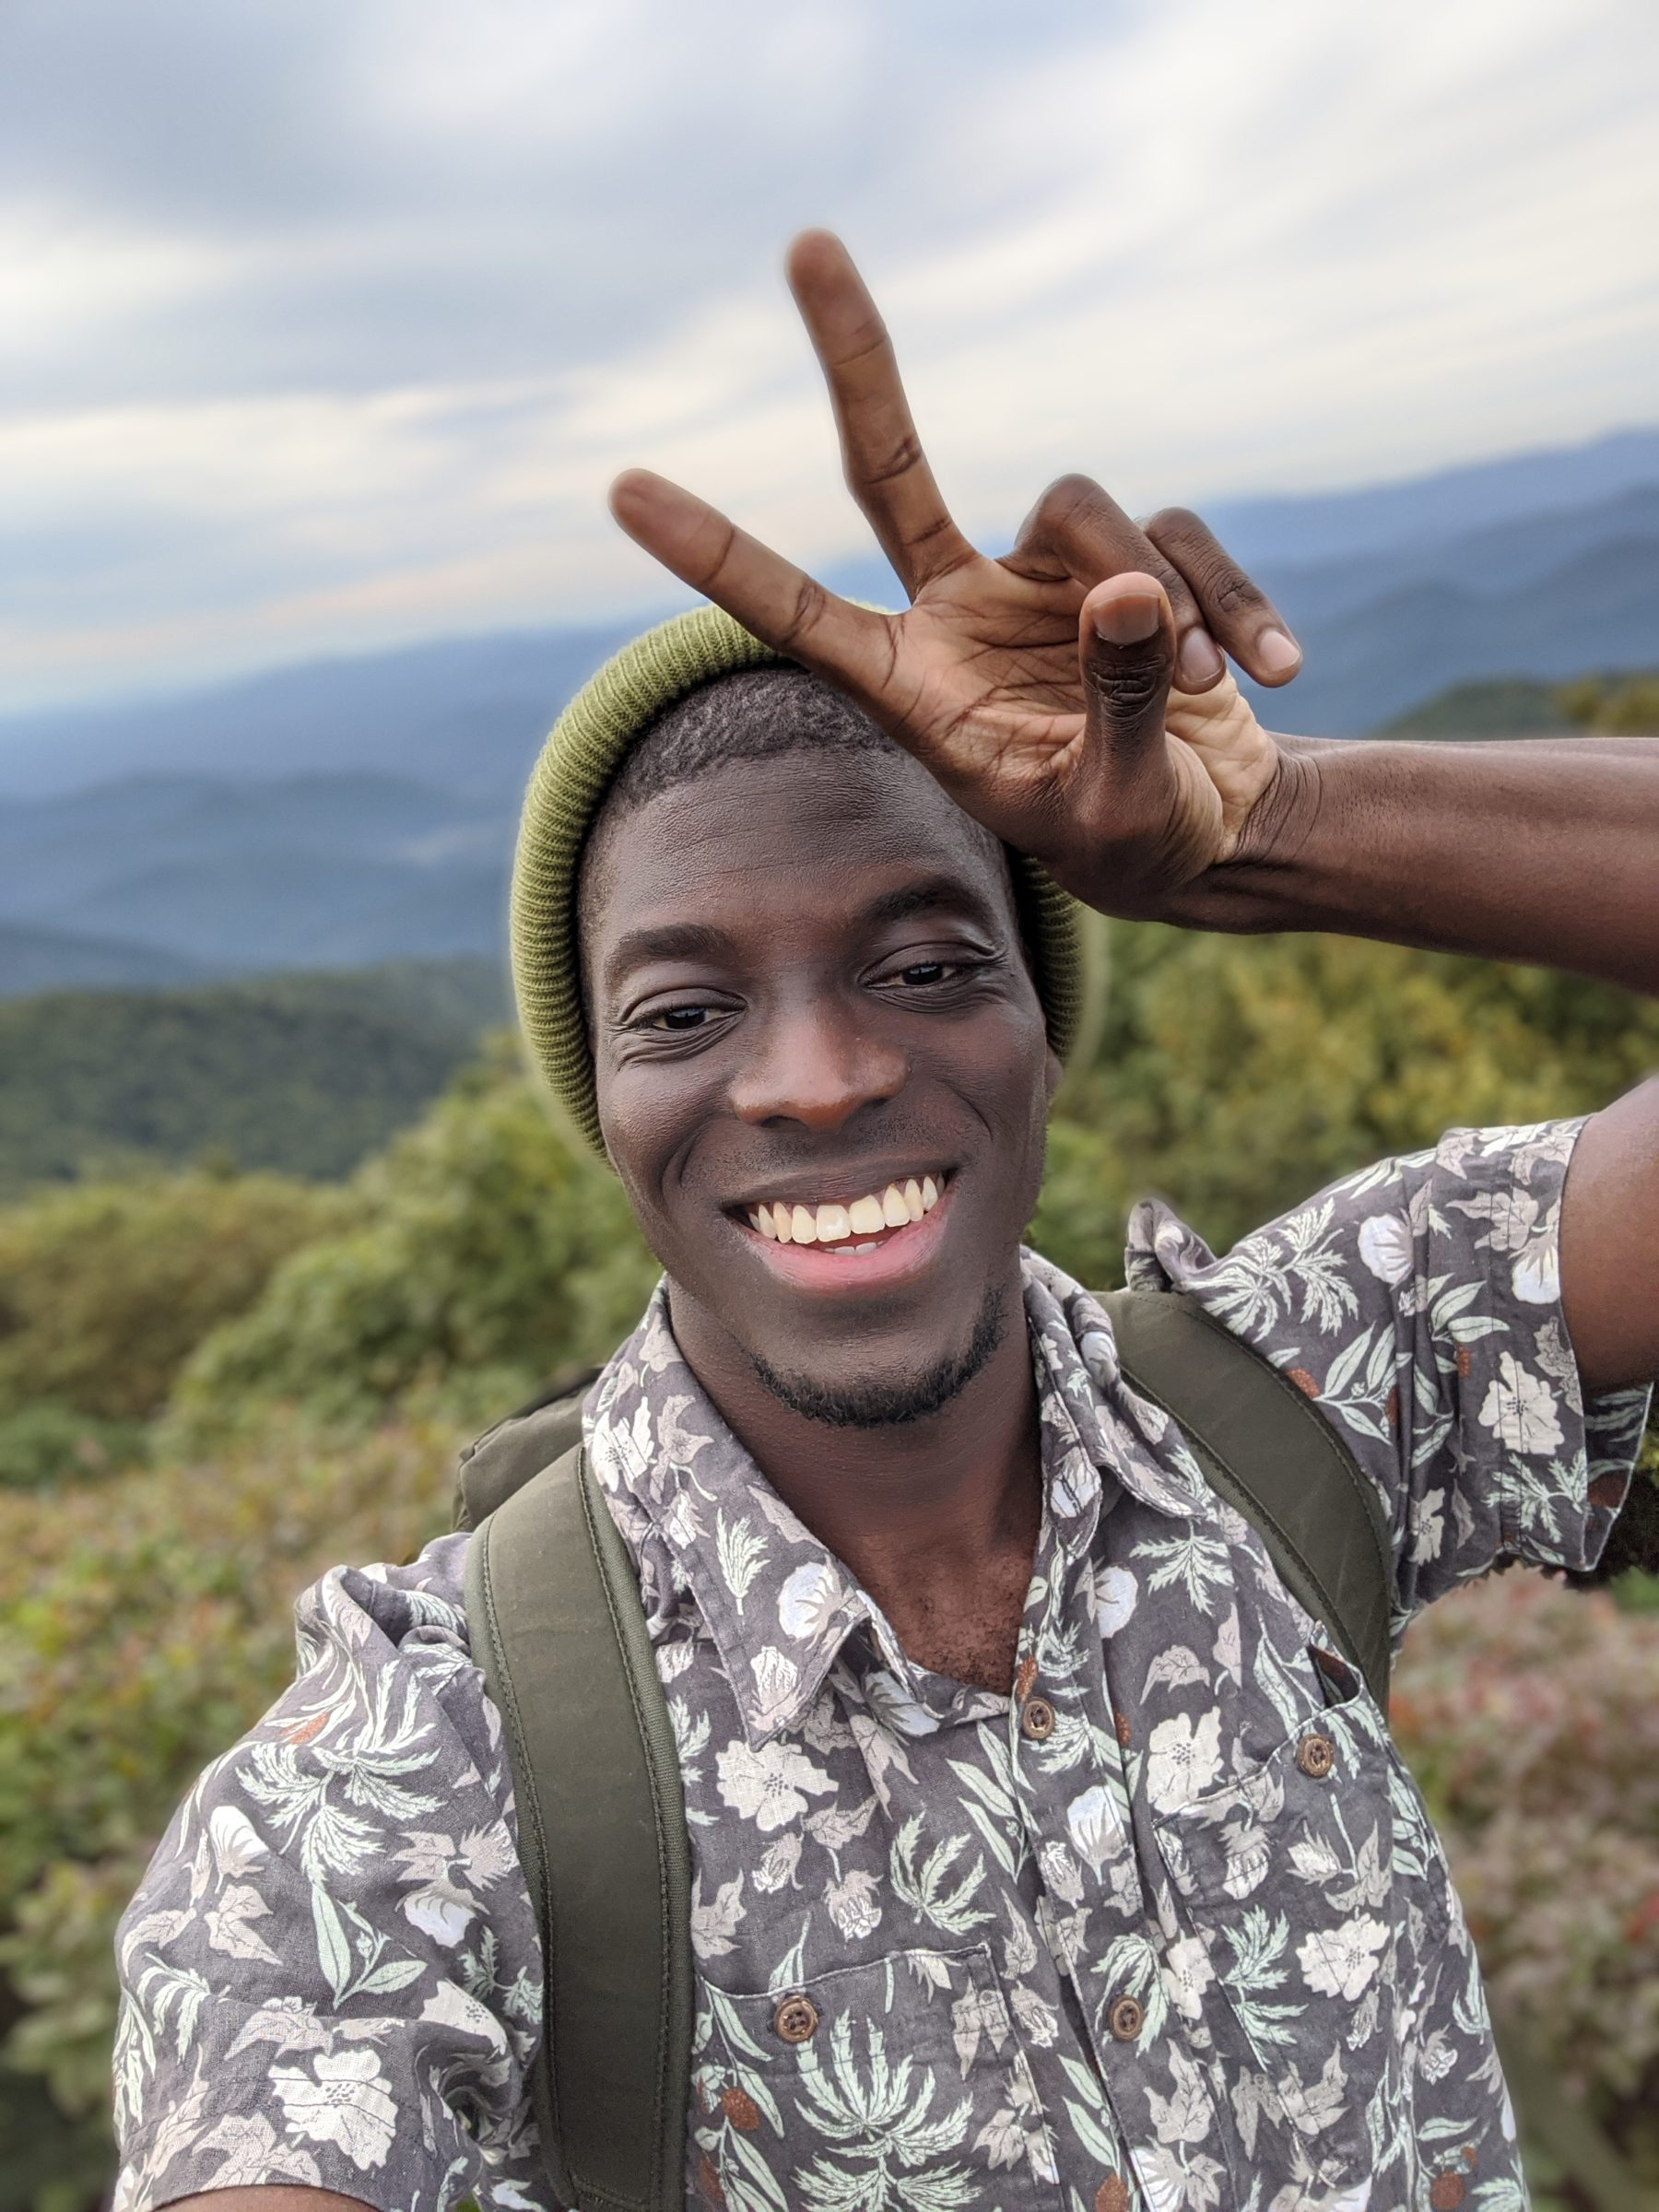 Amath Diouf throwing a peace sign on a hike.